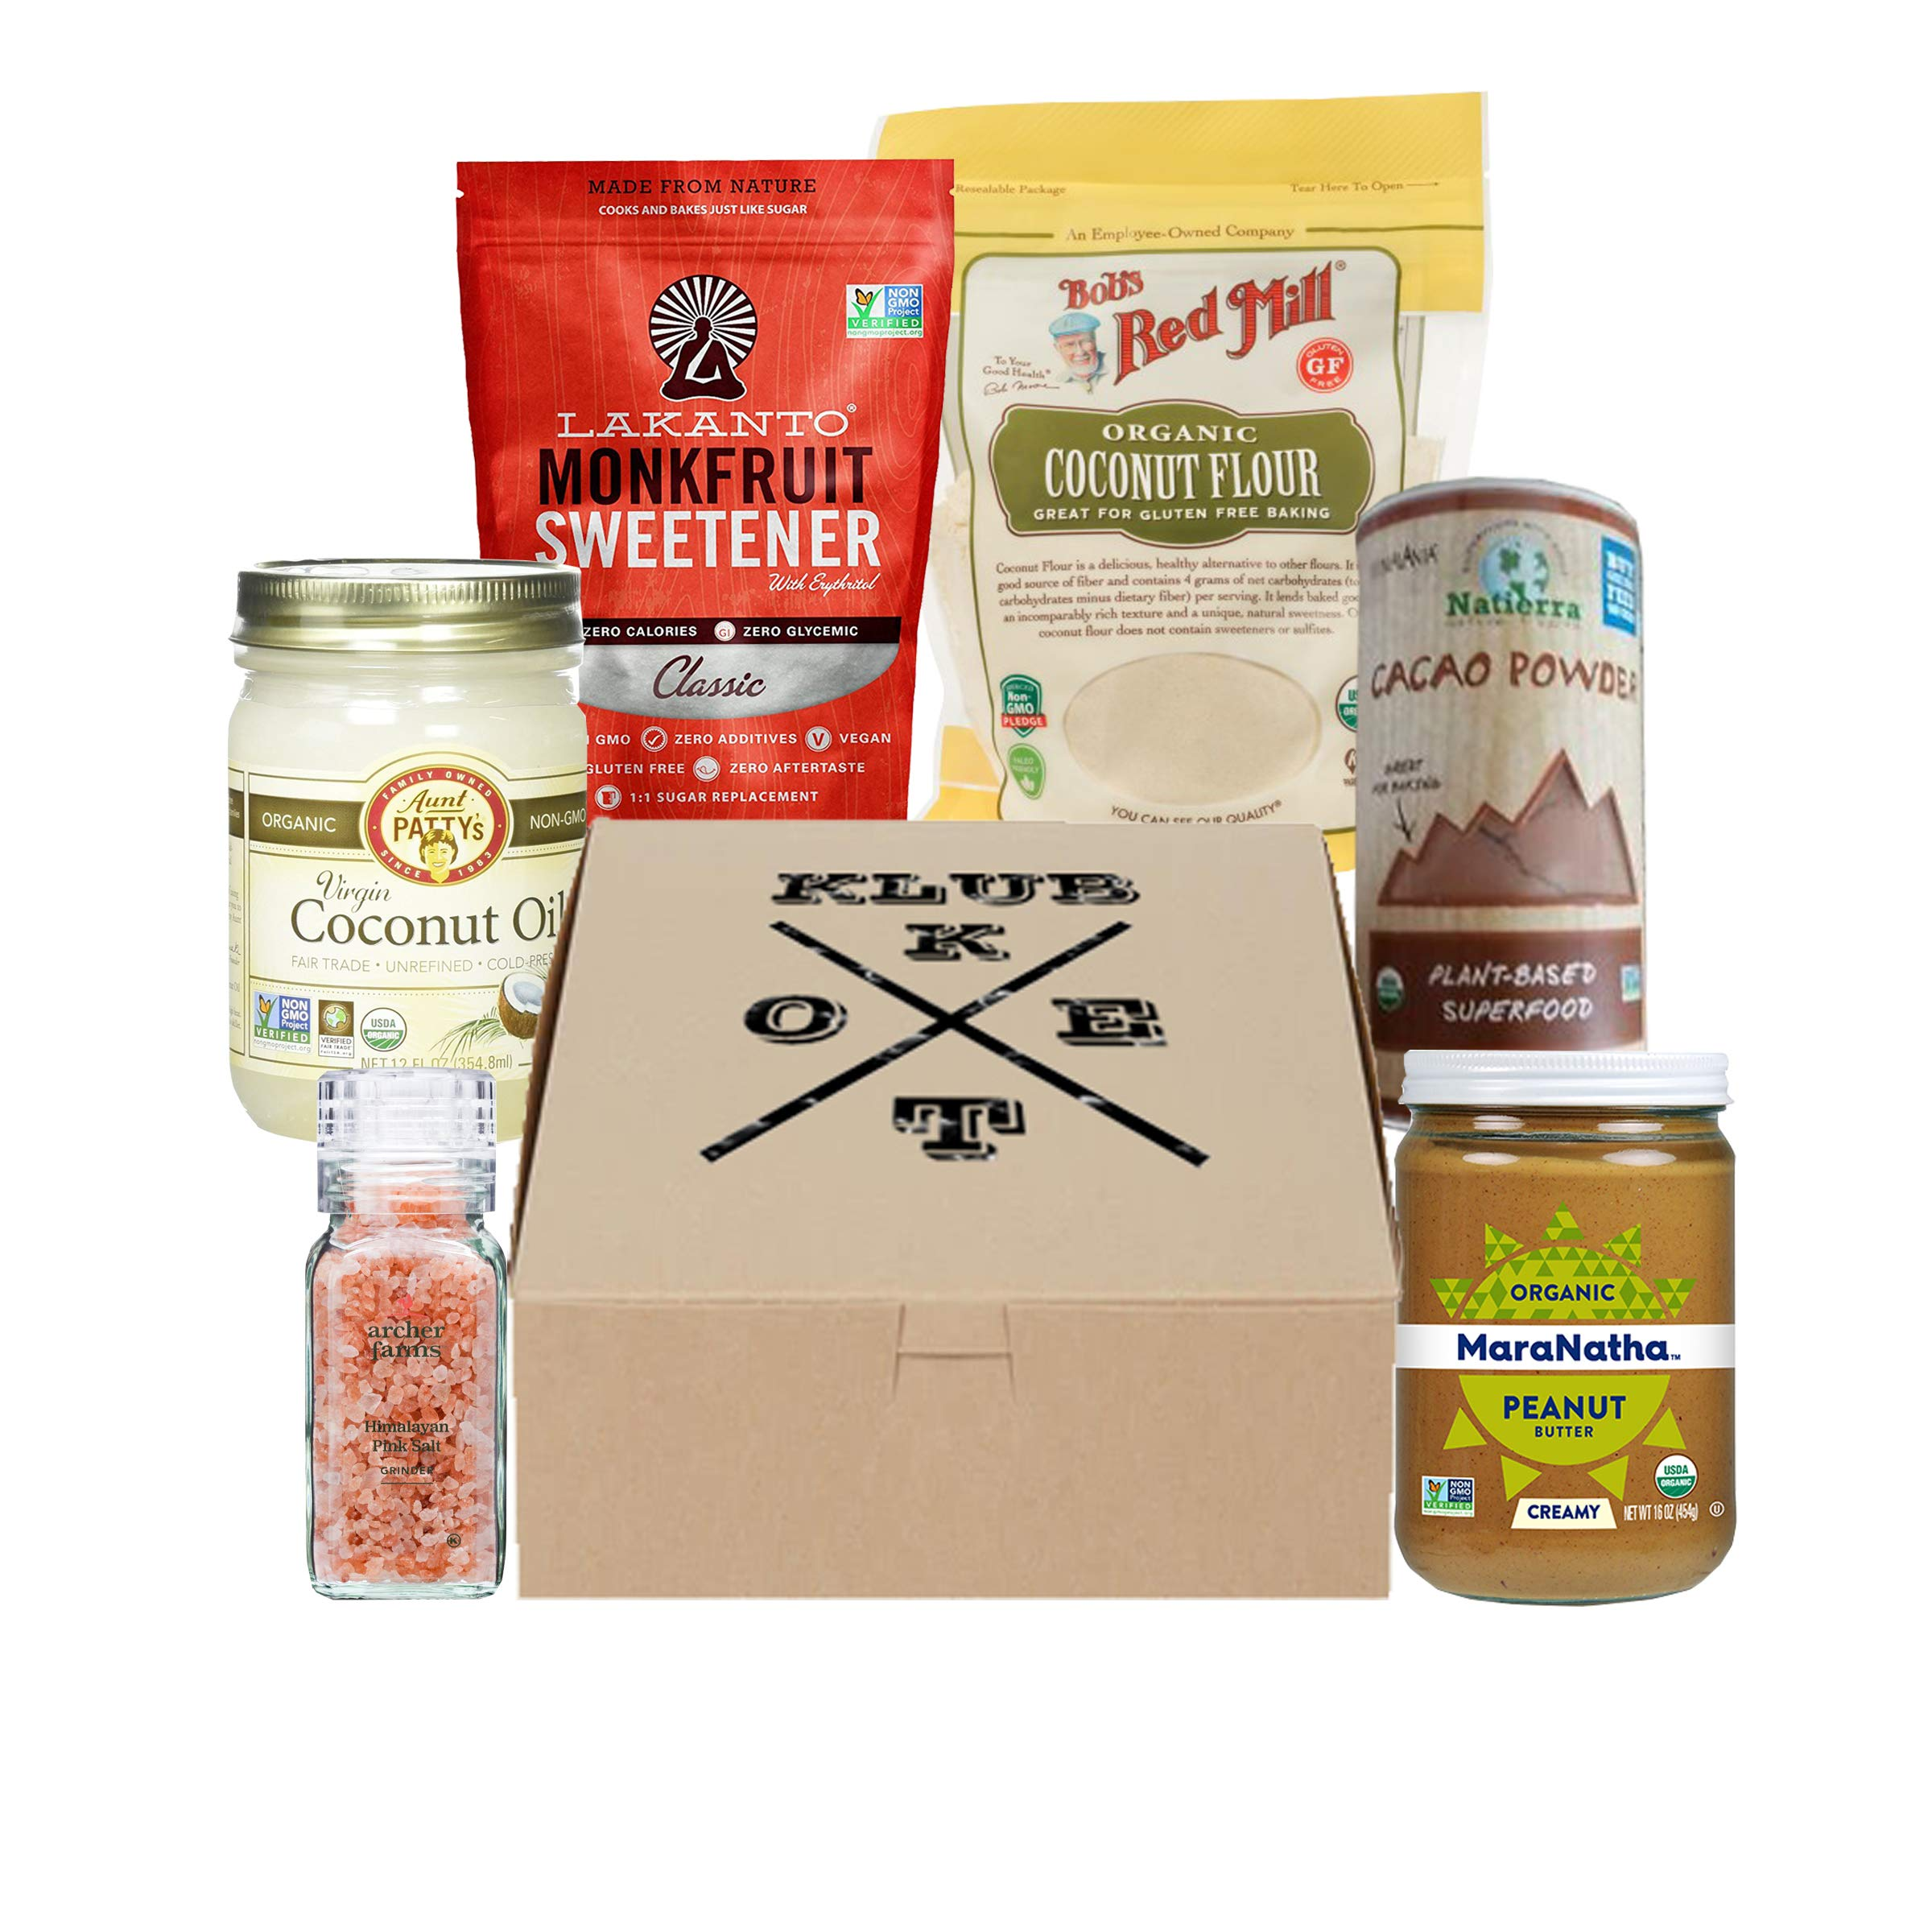 Keto Klub Pantry Box with Almond Meal, Caocao Powder, Monkfruit Sweetener, Coconut Oil and more for cooking essentials (Pantry) by Keto Klub